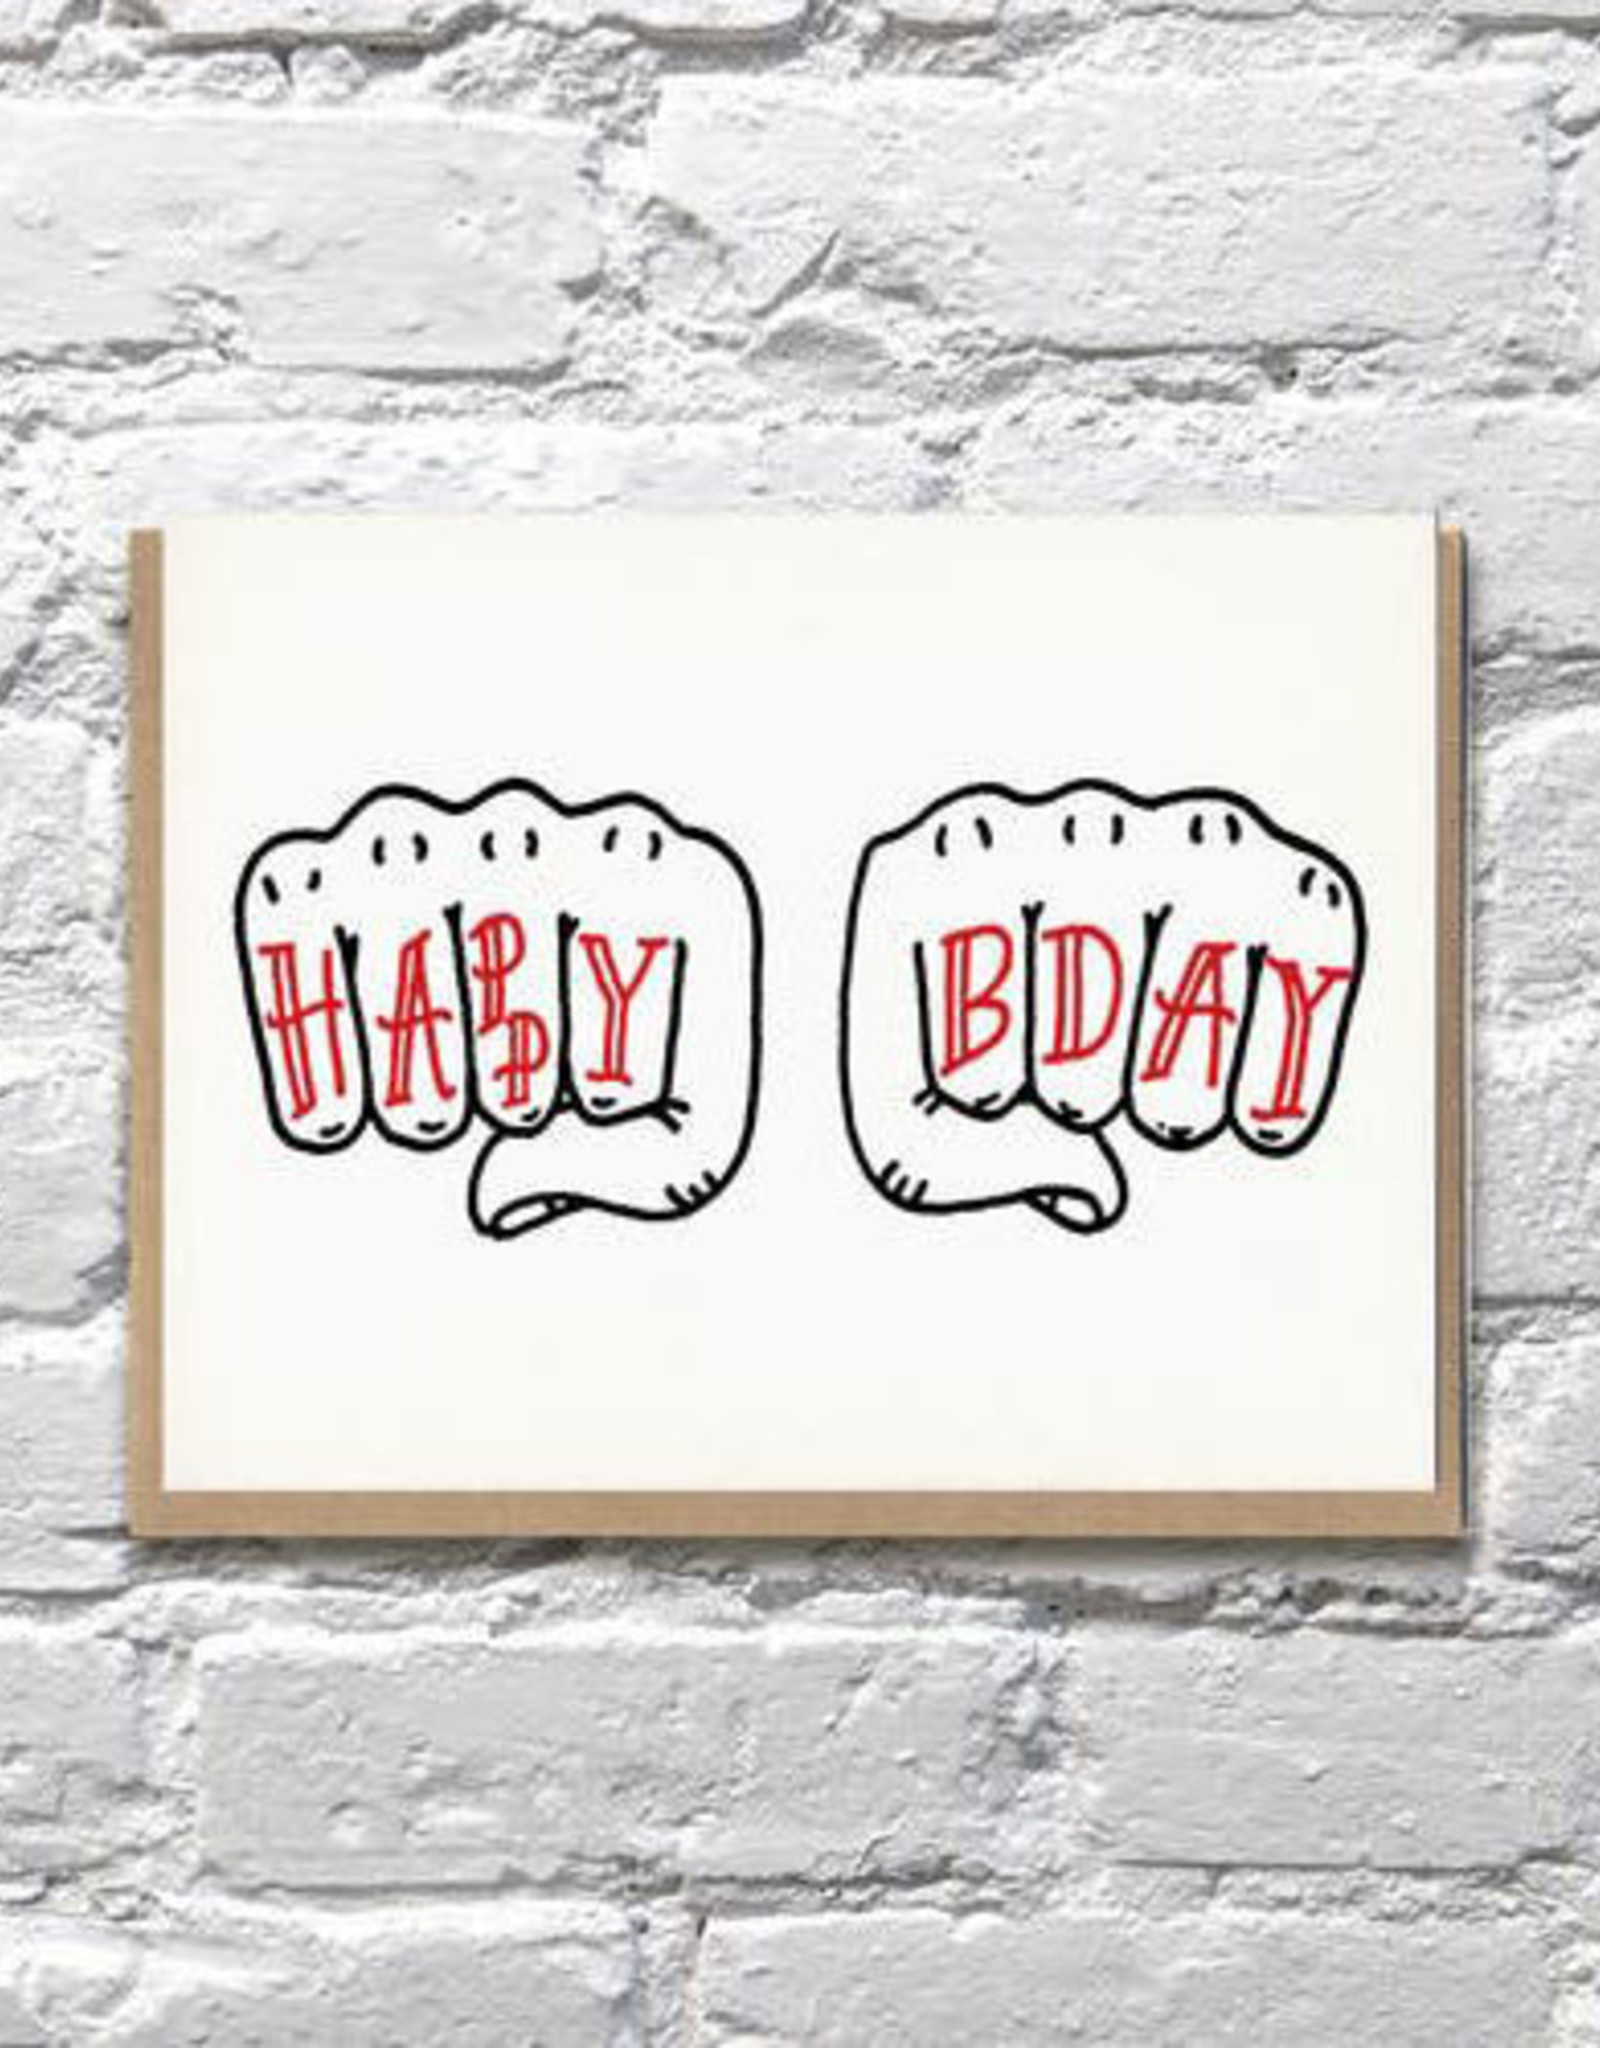 Bench Pressed Birthday Knuckles Card